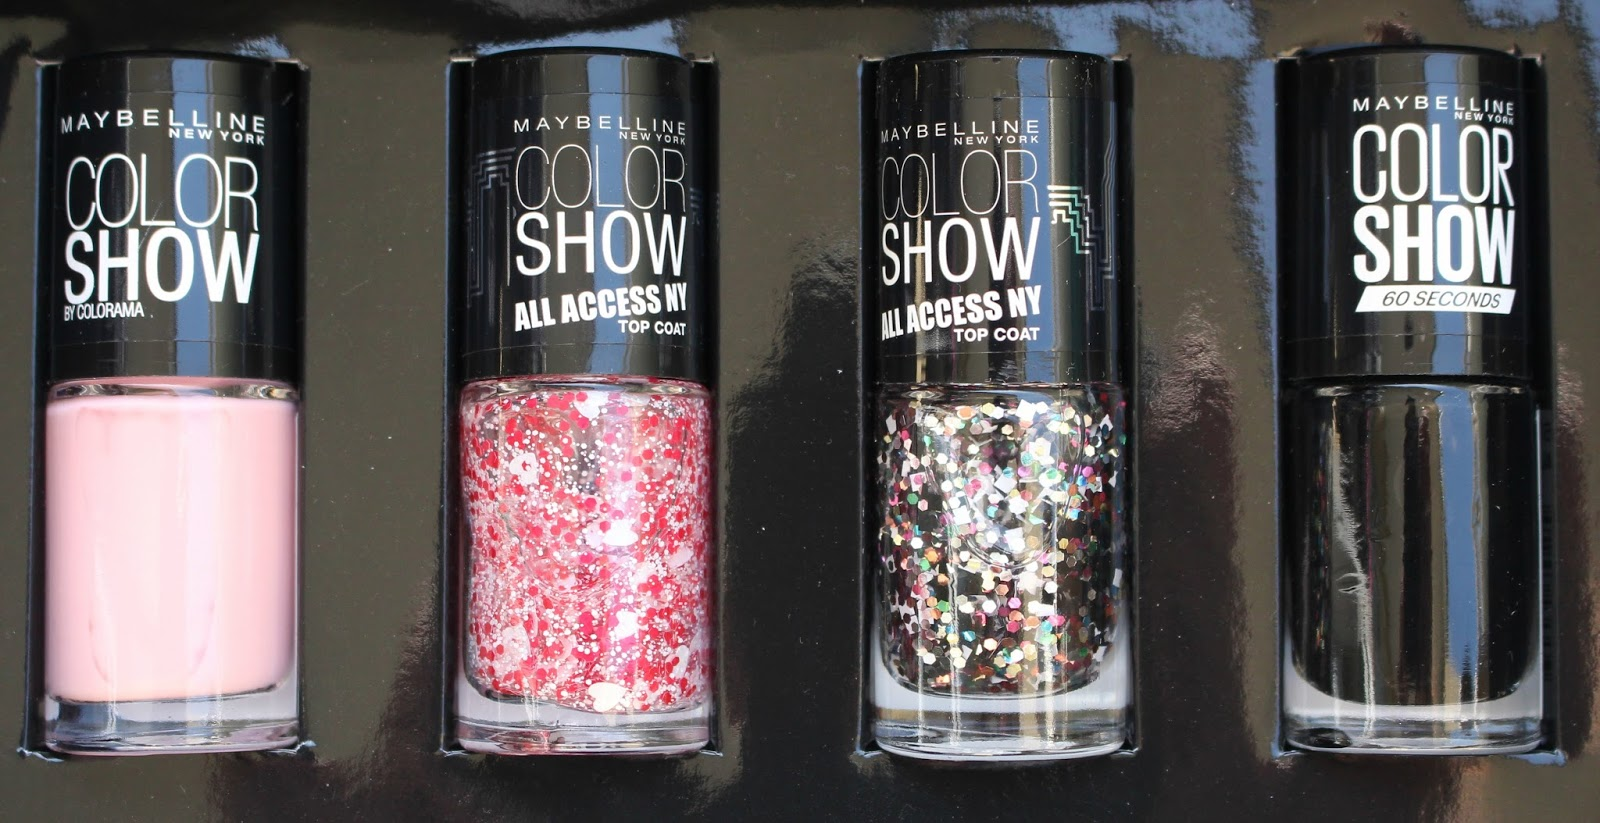 Maybelline Color Show by colorama - ALL ACCESS NY Limited Edition ...